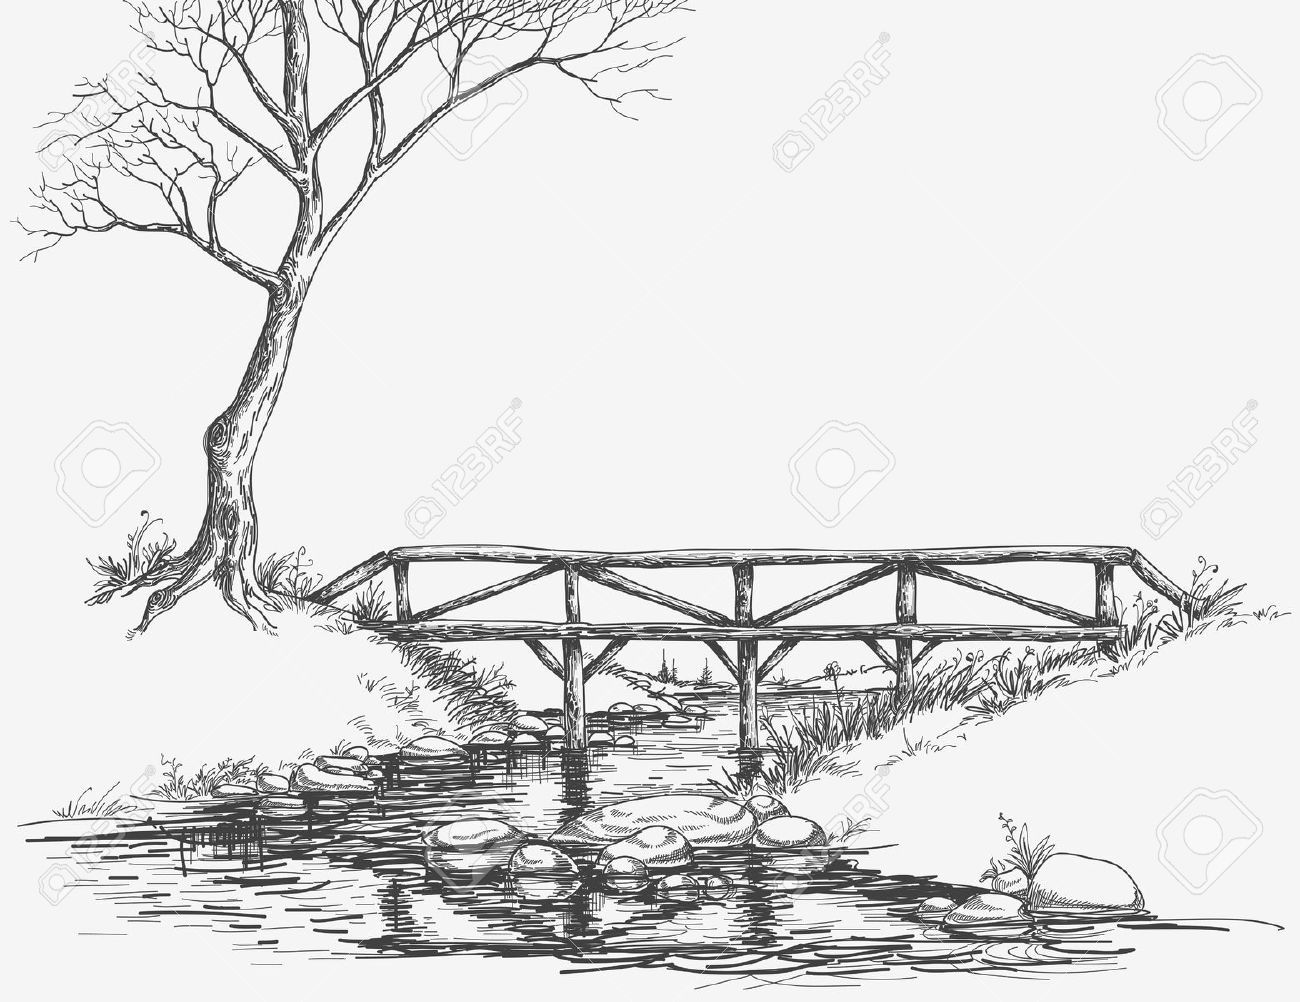 Pencil line drawing river google search